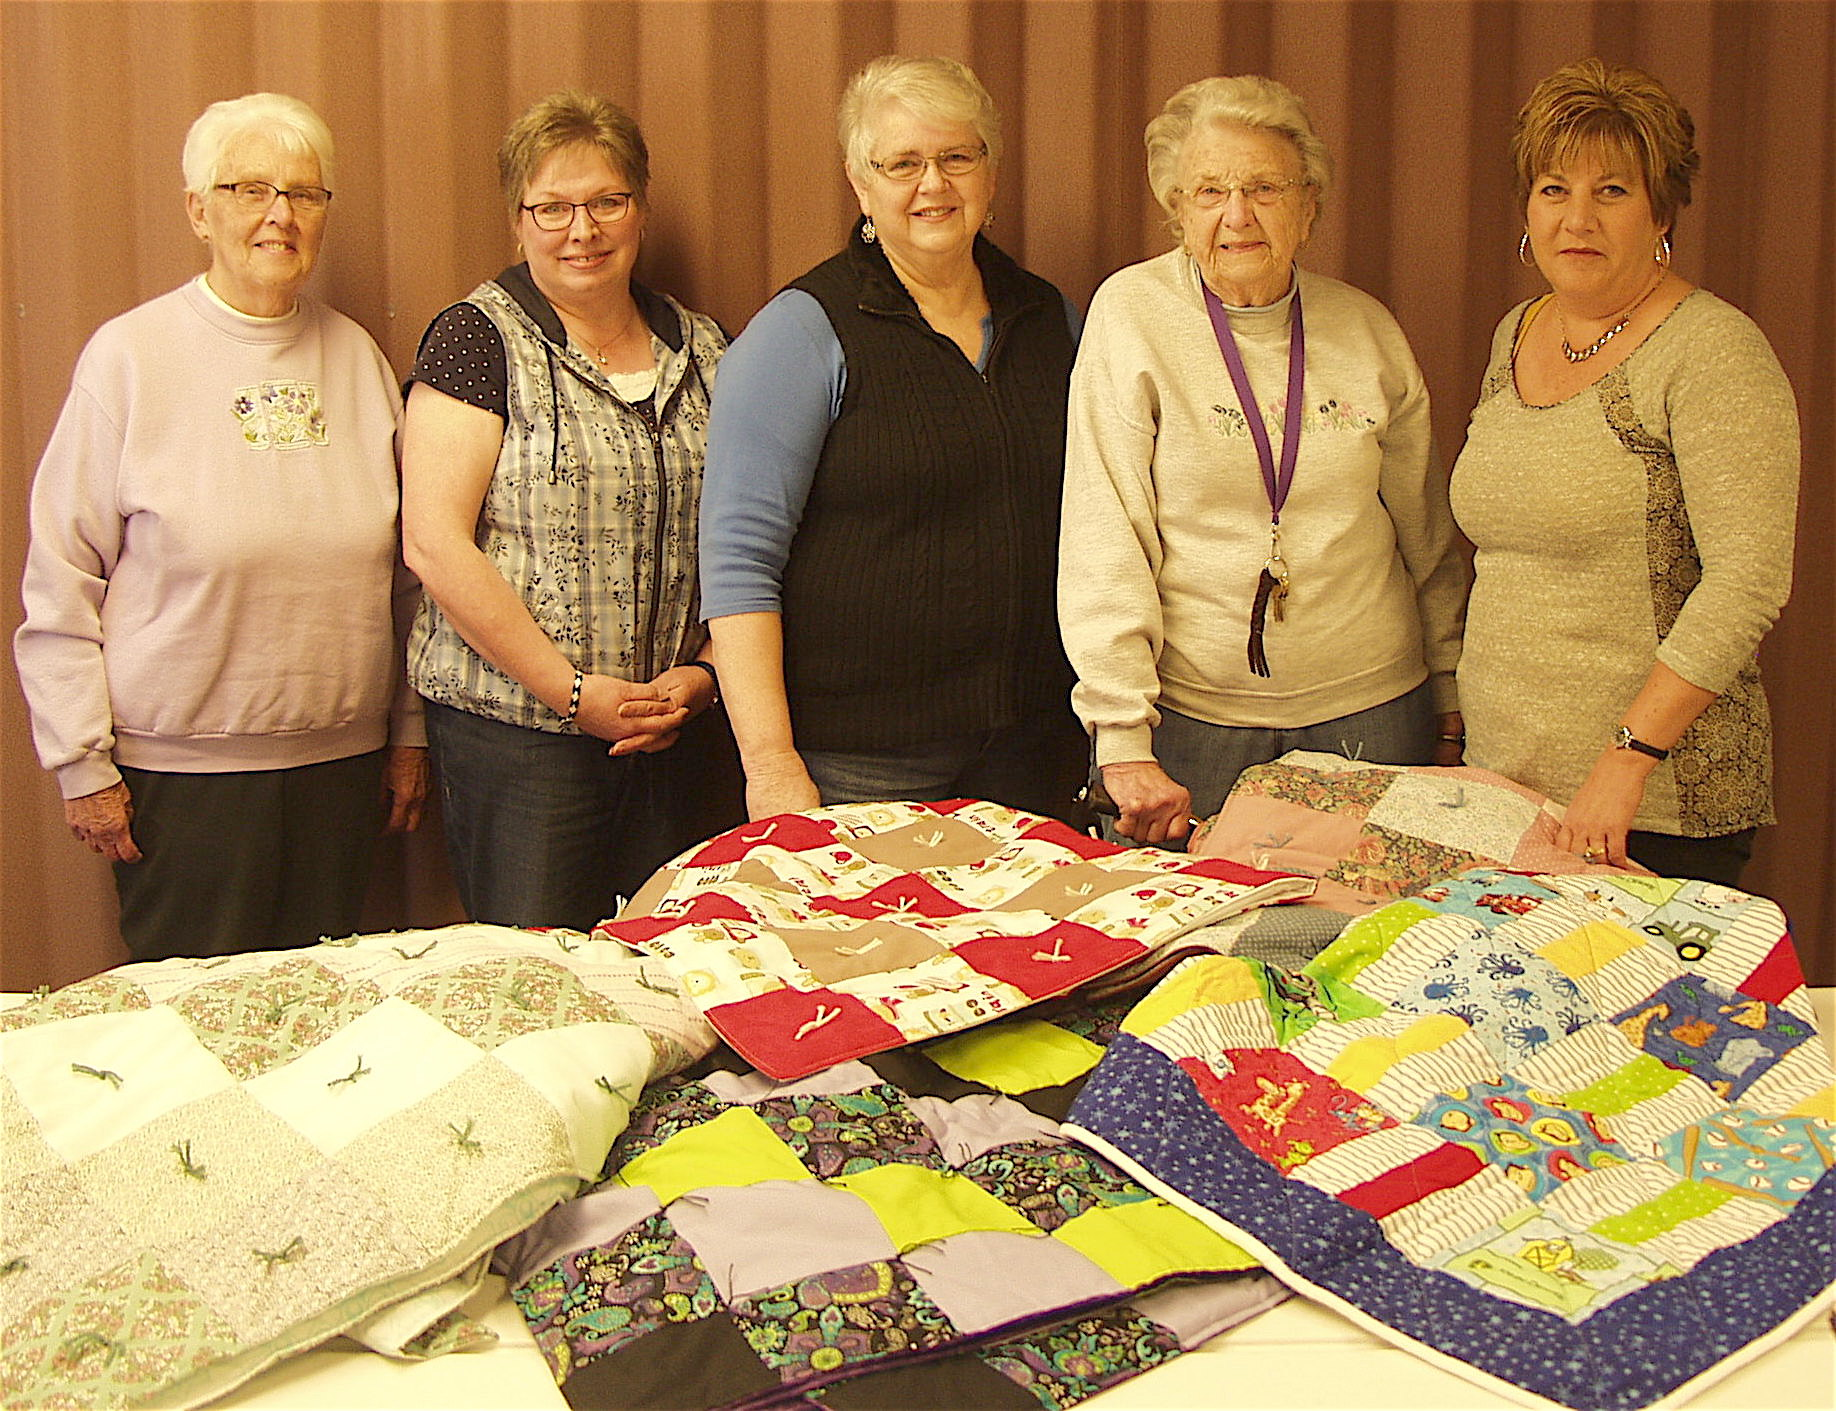 Corinth Reformed Church Quilters Cutline No. 1